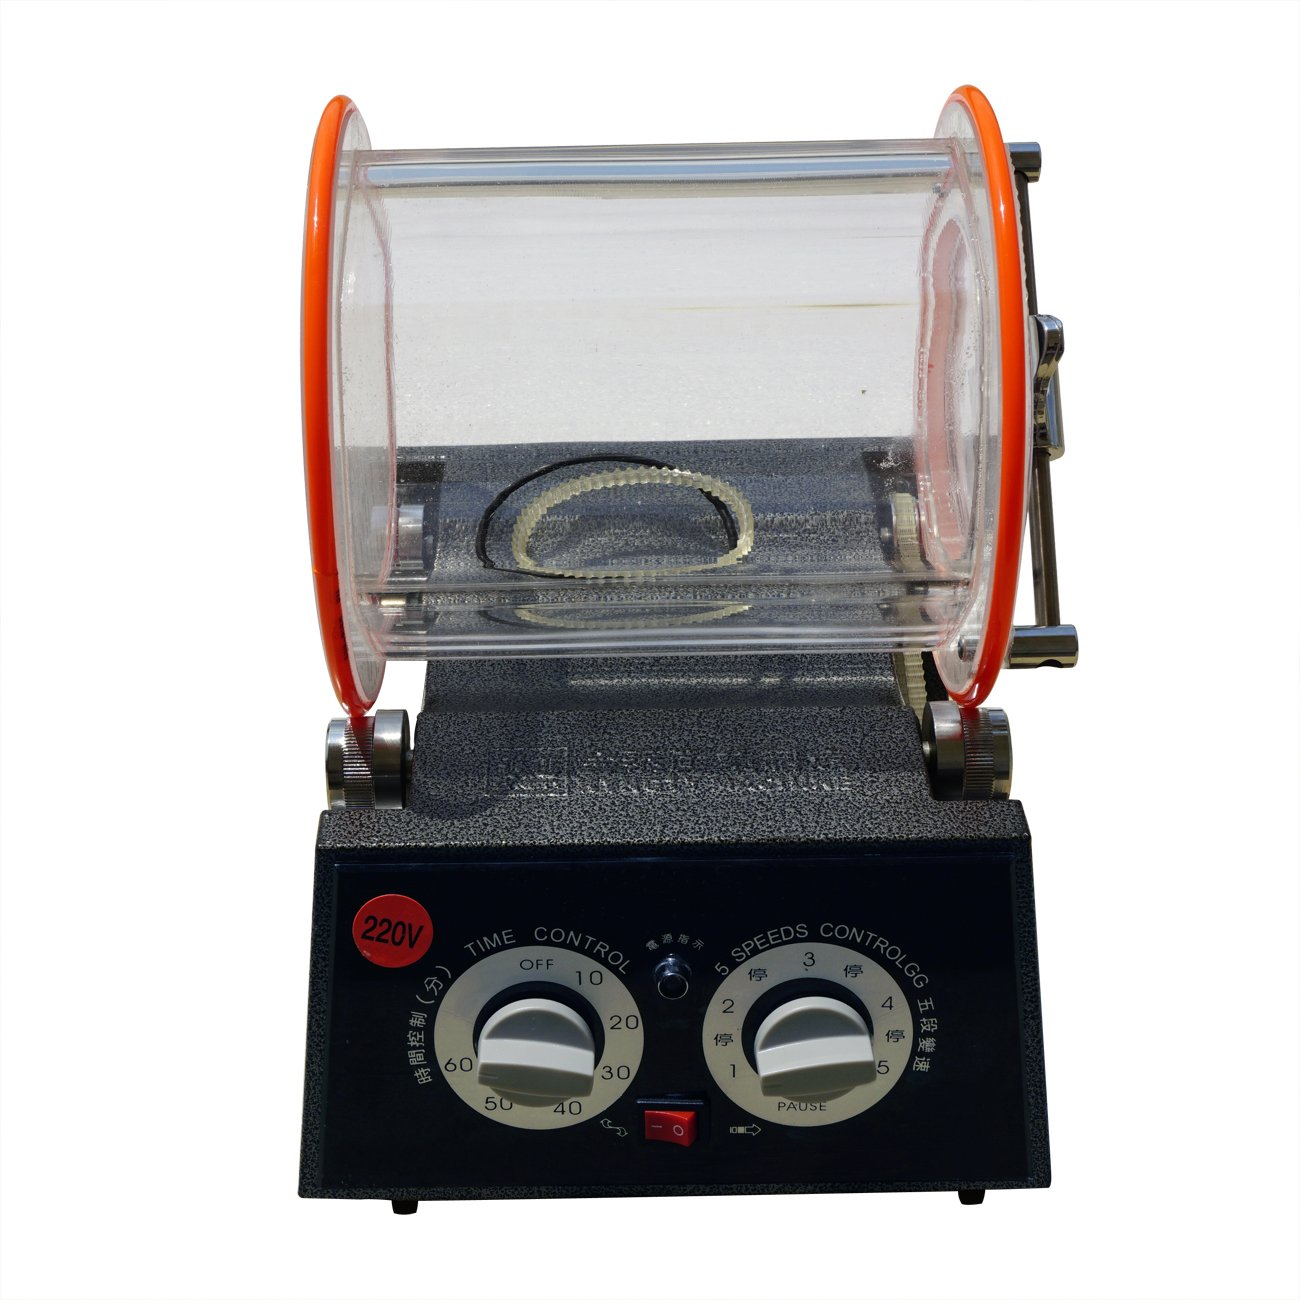 5Kg Rotary Tumbler Surface Polisher Jewelry Rock Polishing Finishing Machine by Fisters (Image #1)